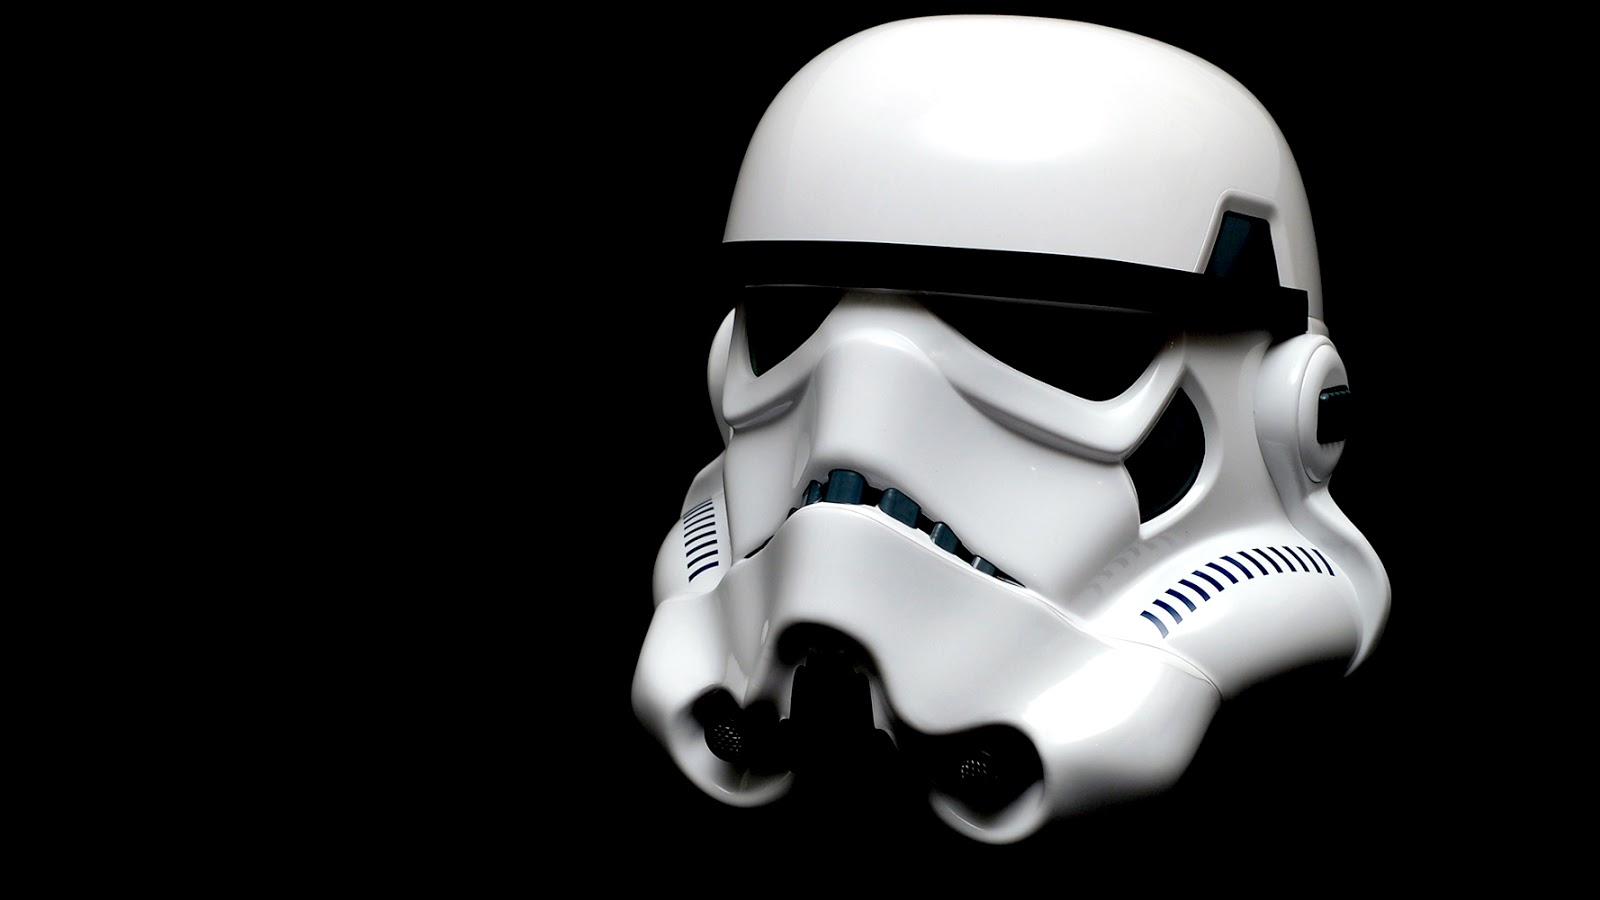 stormtrooper wallpaper star wars - photo #17